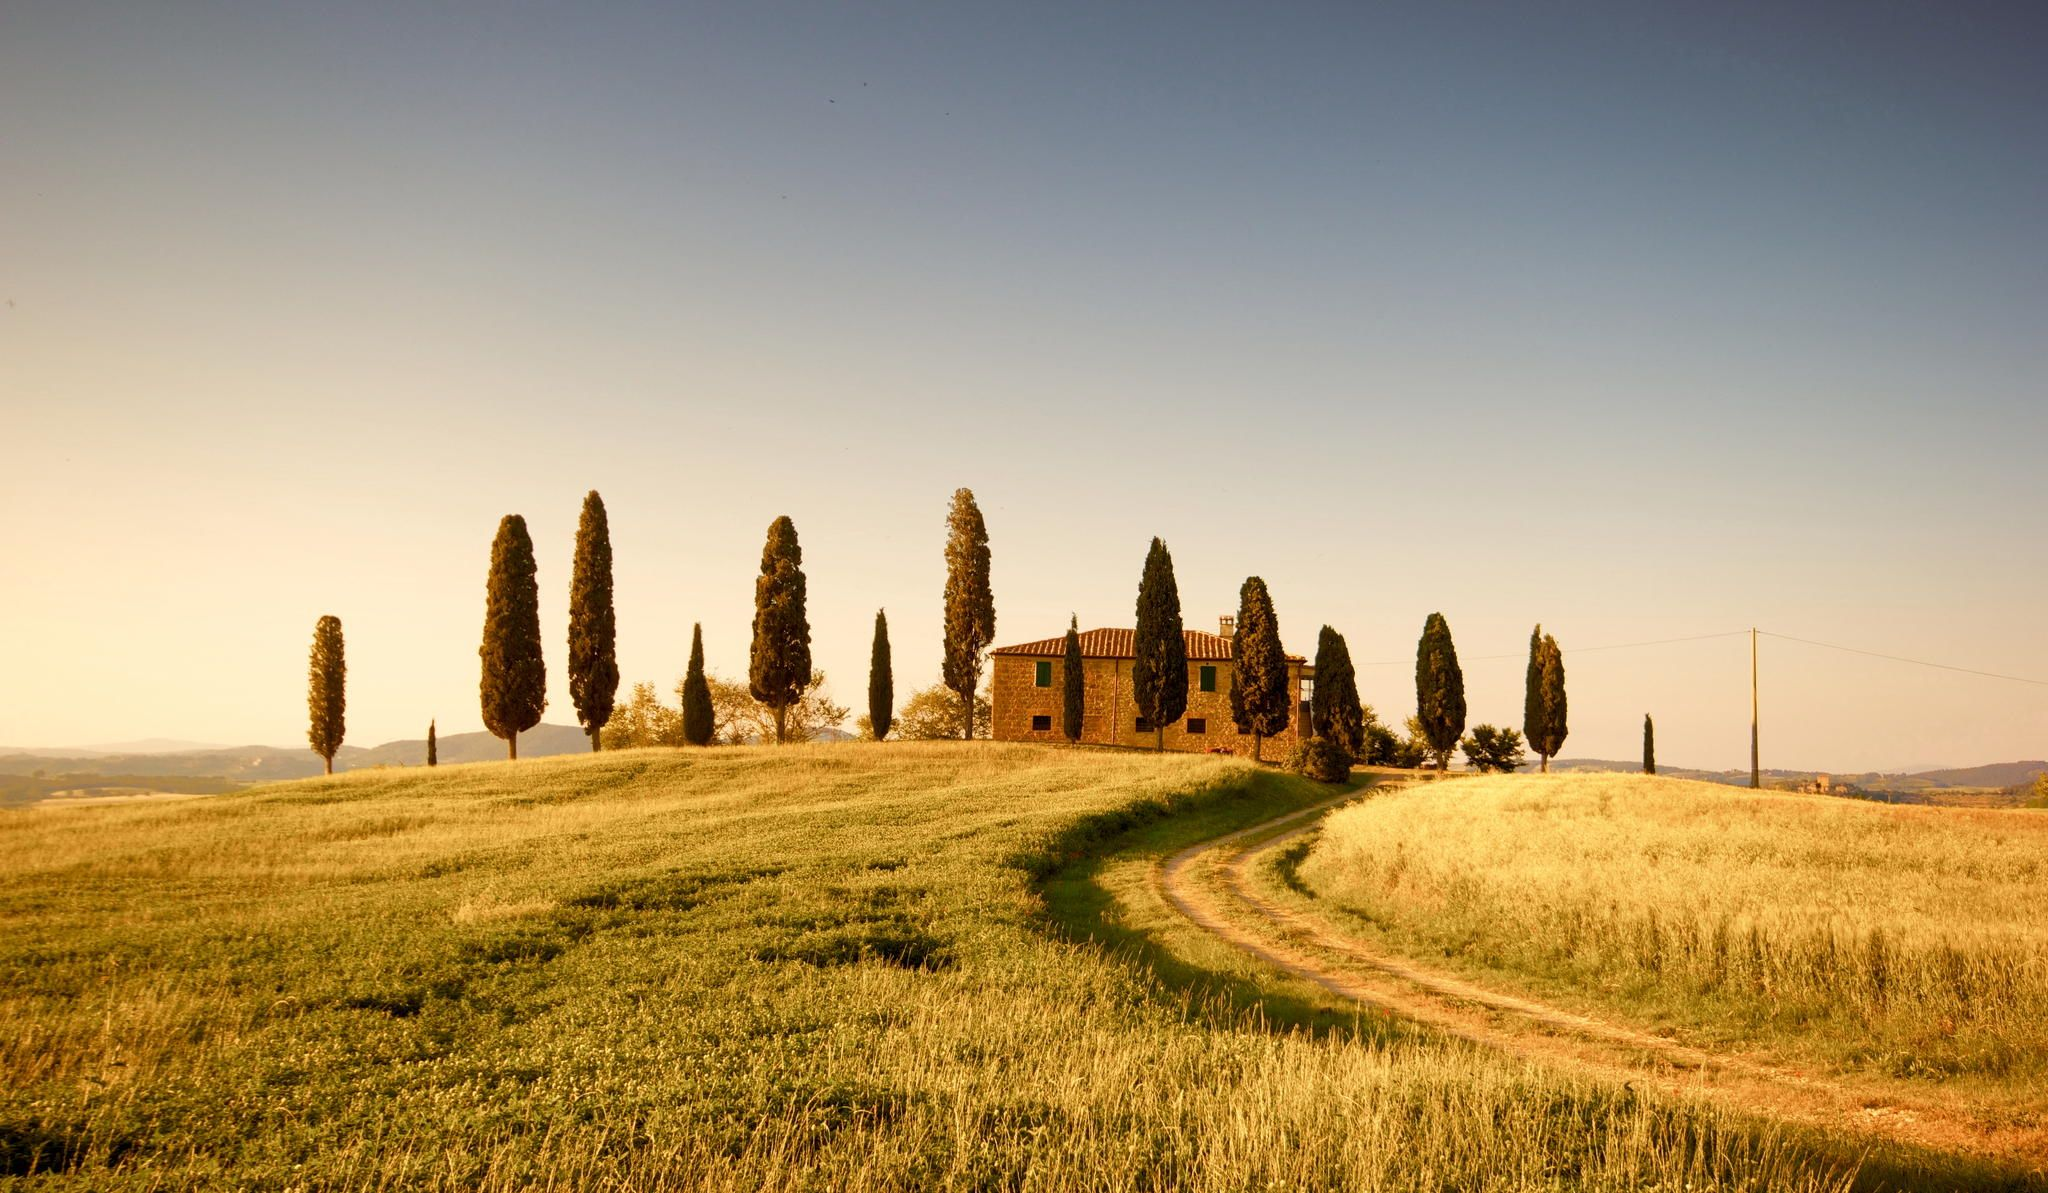 Standing in line -Cypress trees in Tuscany, Italy - by Francesco Riccardo Iacomino on 500px